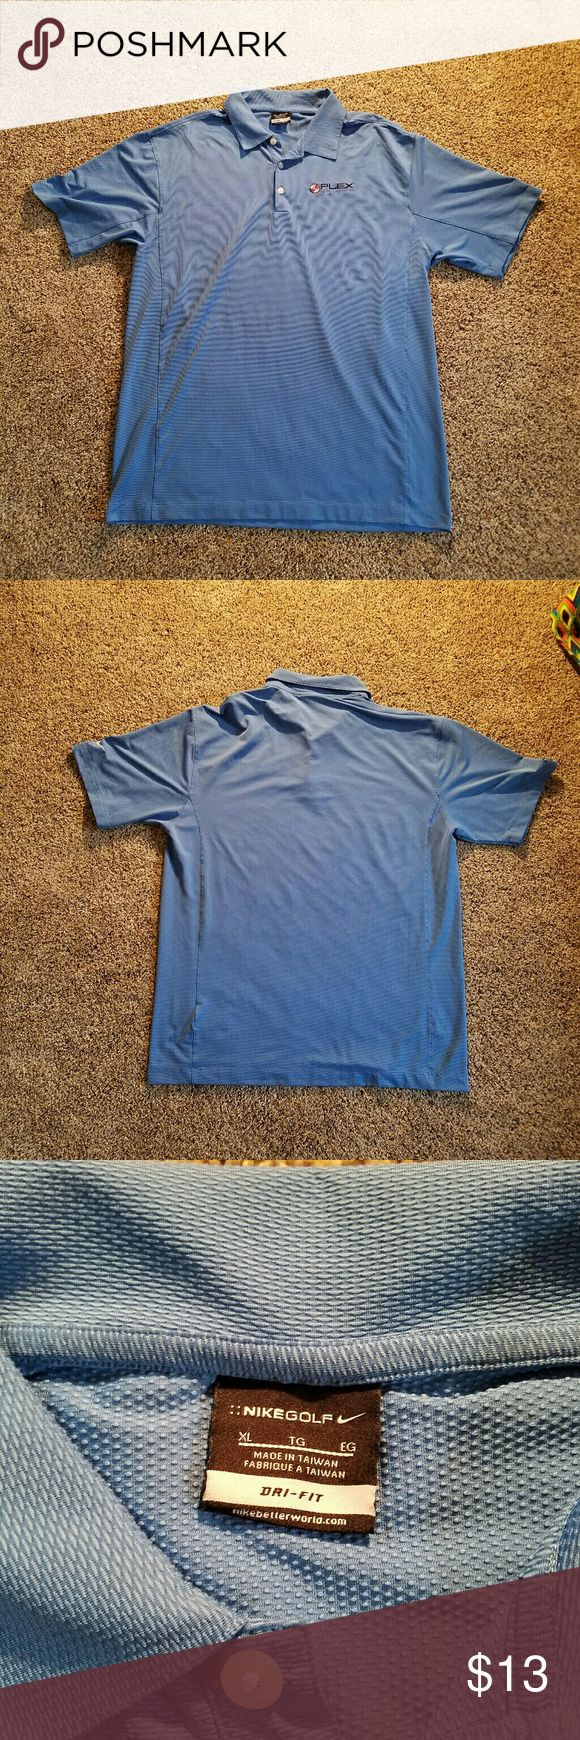 Nike Golf Men's drifit Short Sleeve shirt 89% polyester 11% spandex in good condition. Has a Plex Online. No snags, tares, or stains. Light weight in very good condition. Nike Shirts Polos